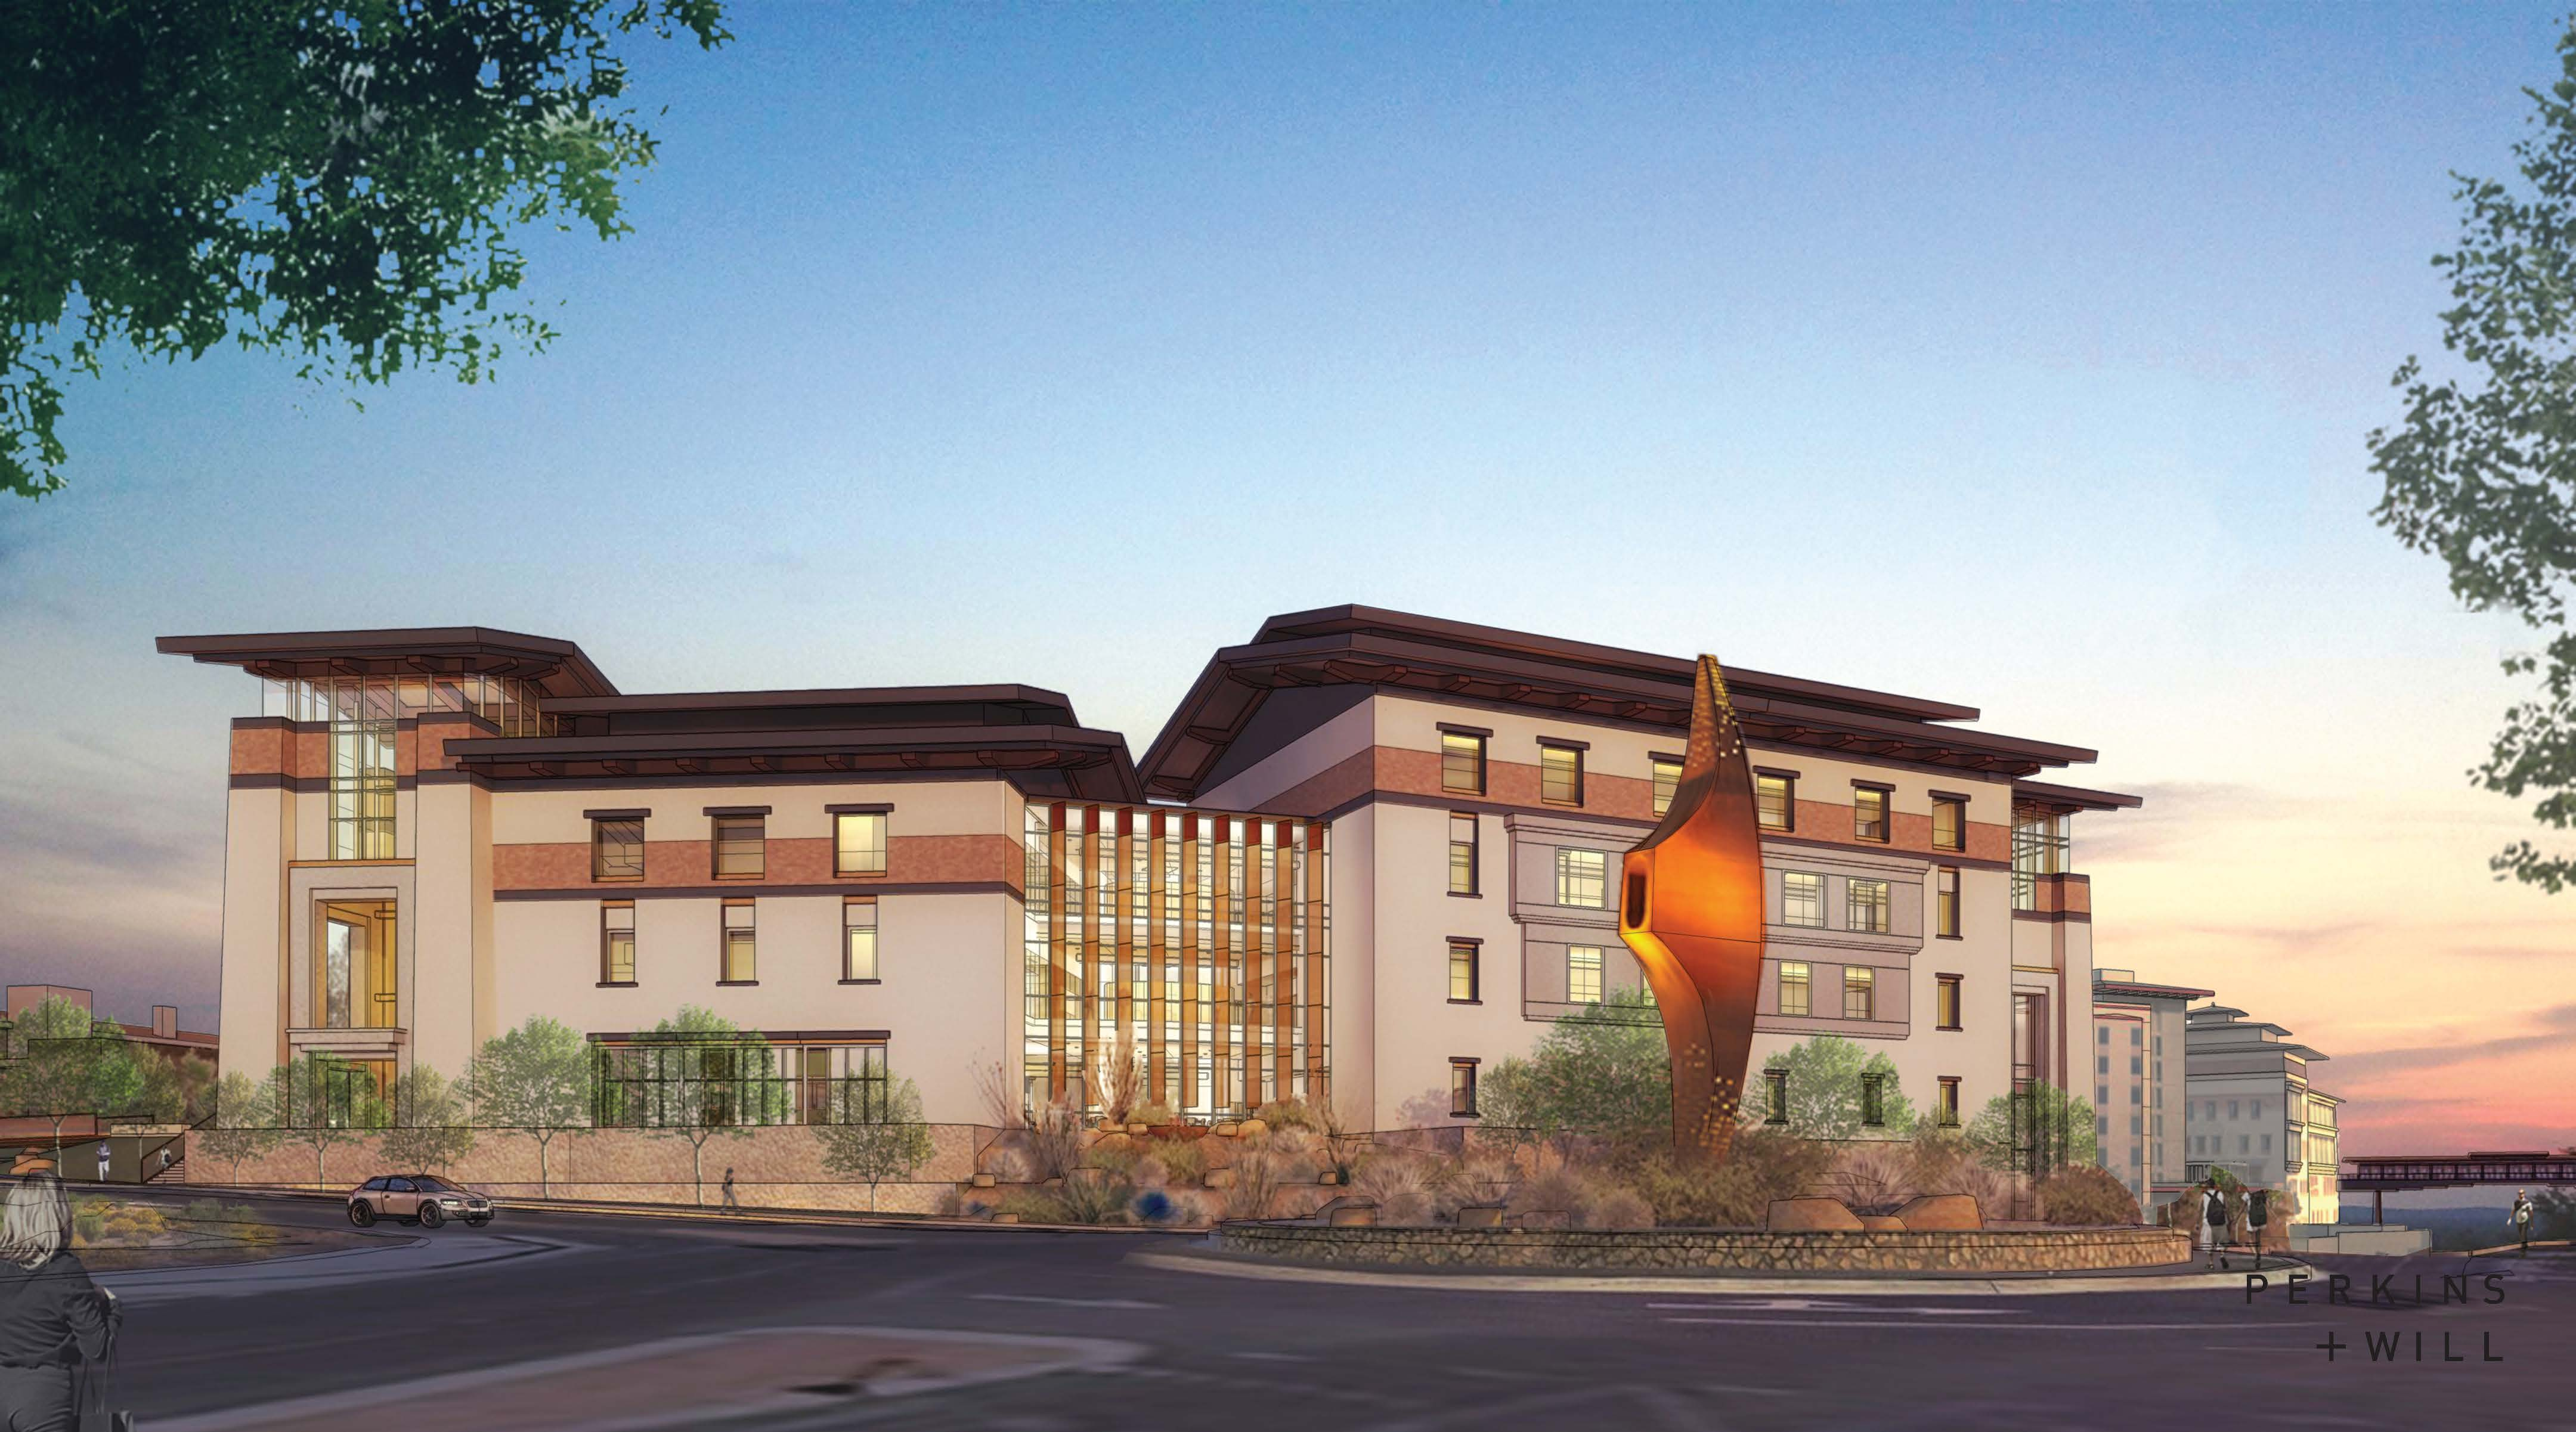 The University of Texas at El Paso UTEP – Interdisciplinary Research Building Masonry Texas Subcontractor